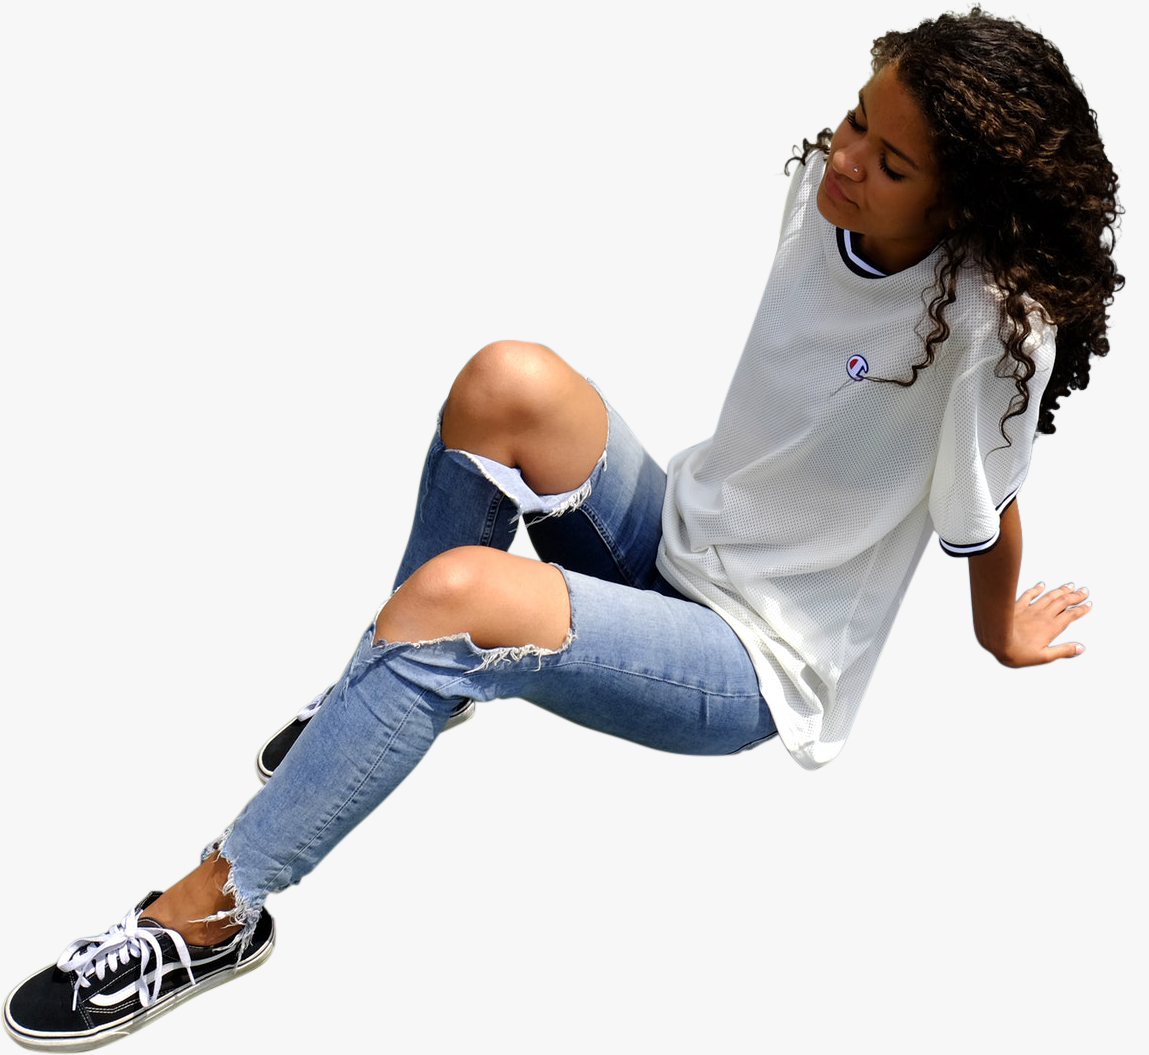 Casual Girl Sitting Aerial View Sitting Girl People Png Casual Girl